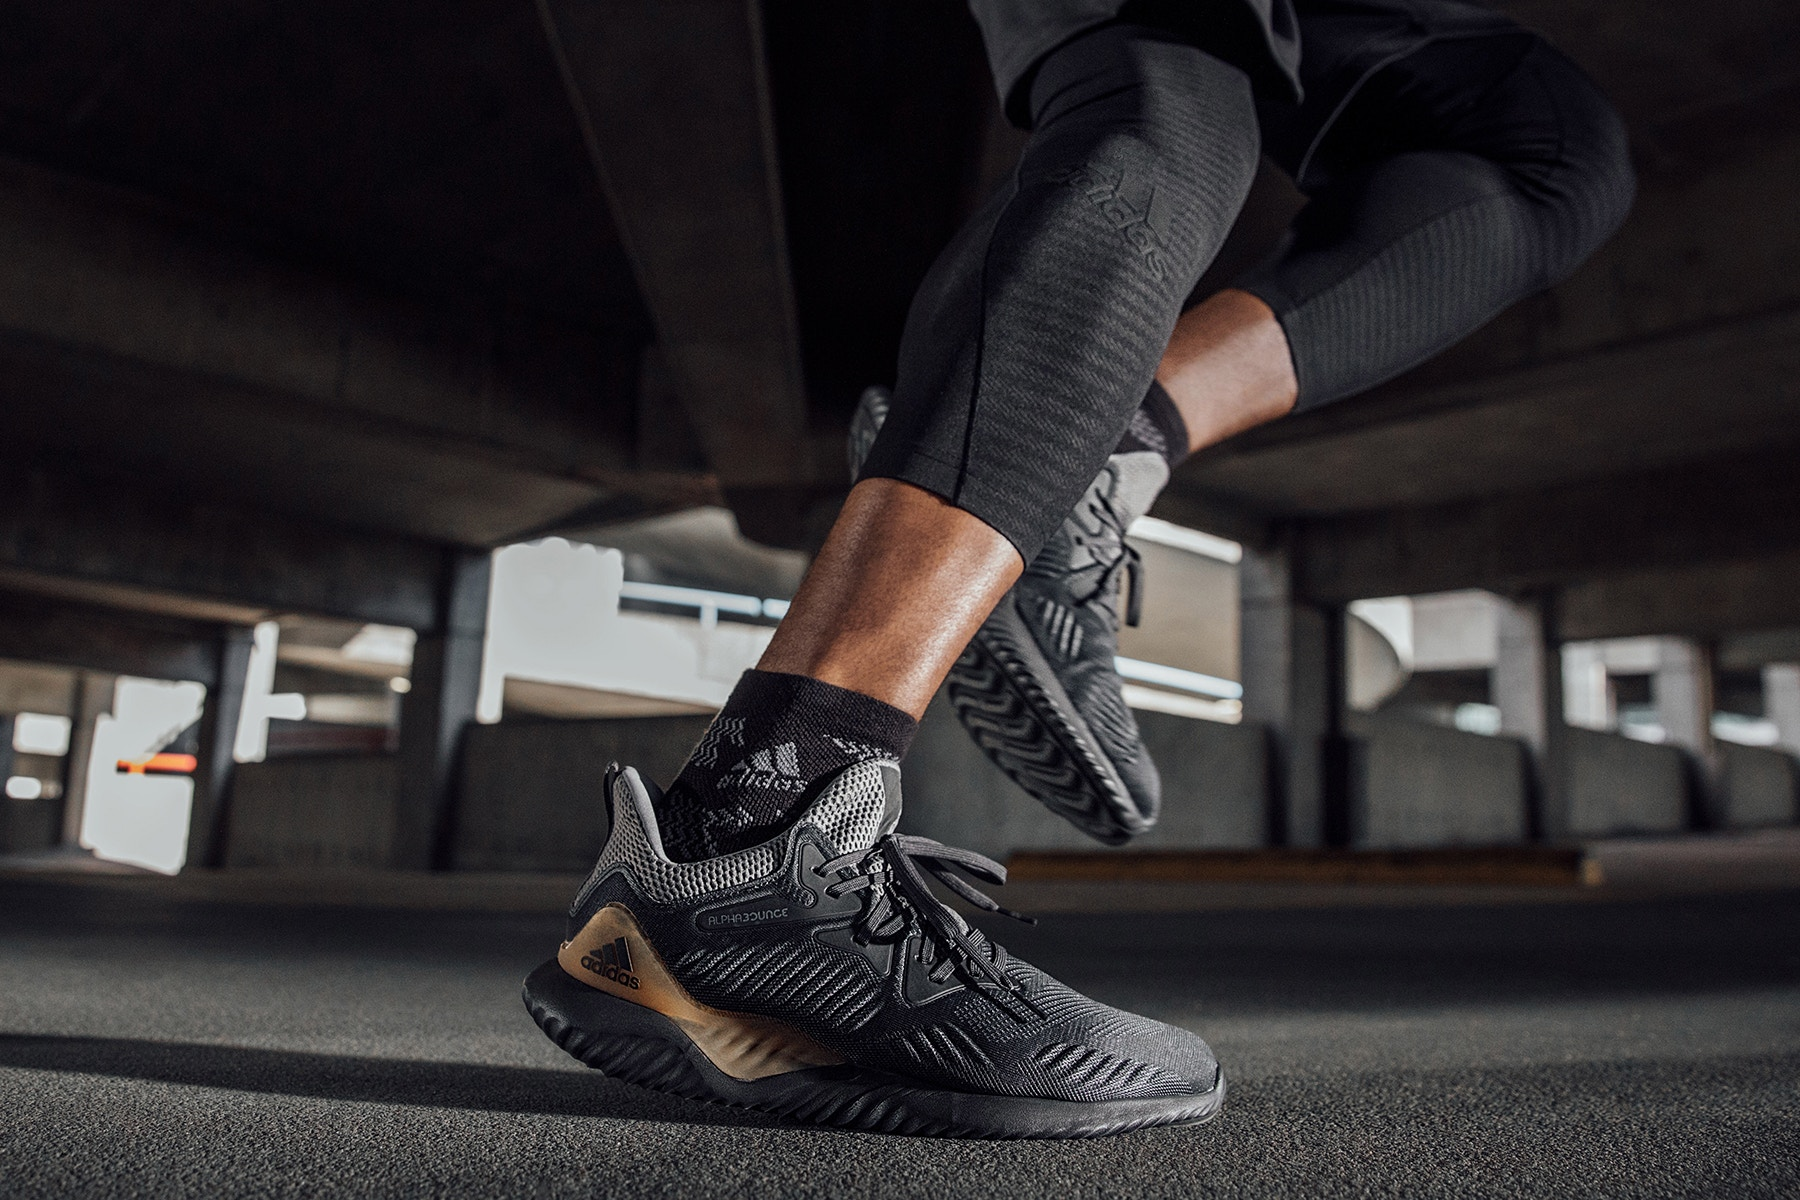 new styles cba30 4d8c1 adidas-alphabounce-beyond-run-the-game-campaign-003 -